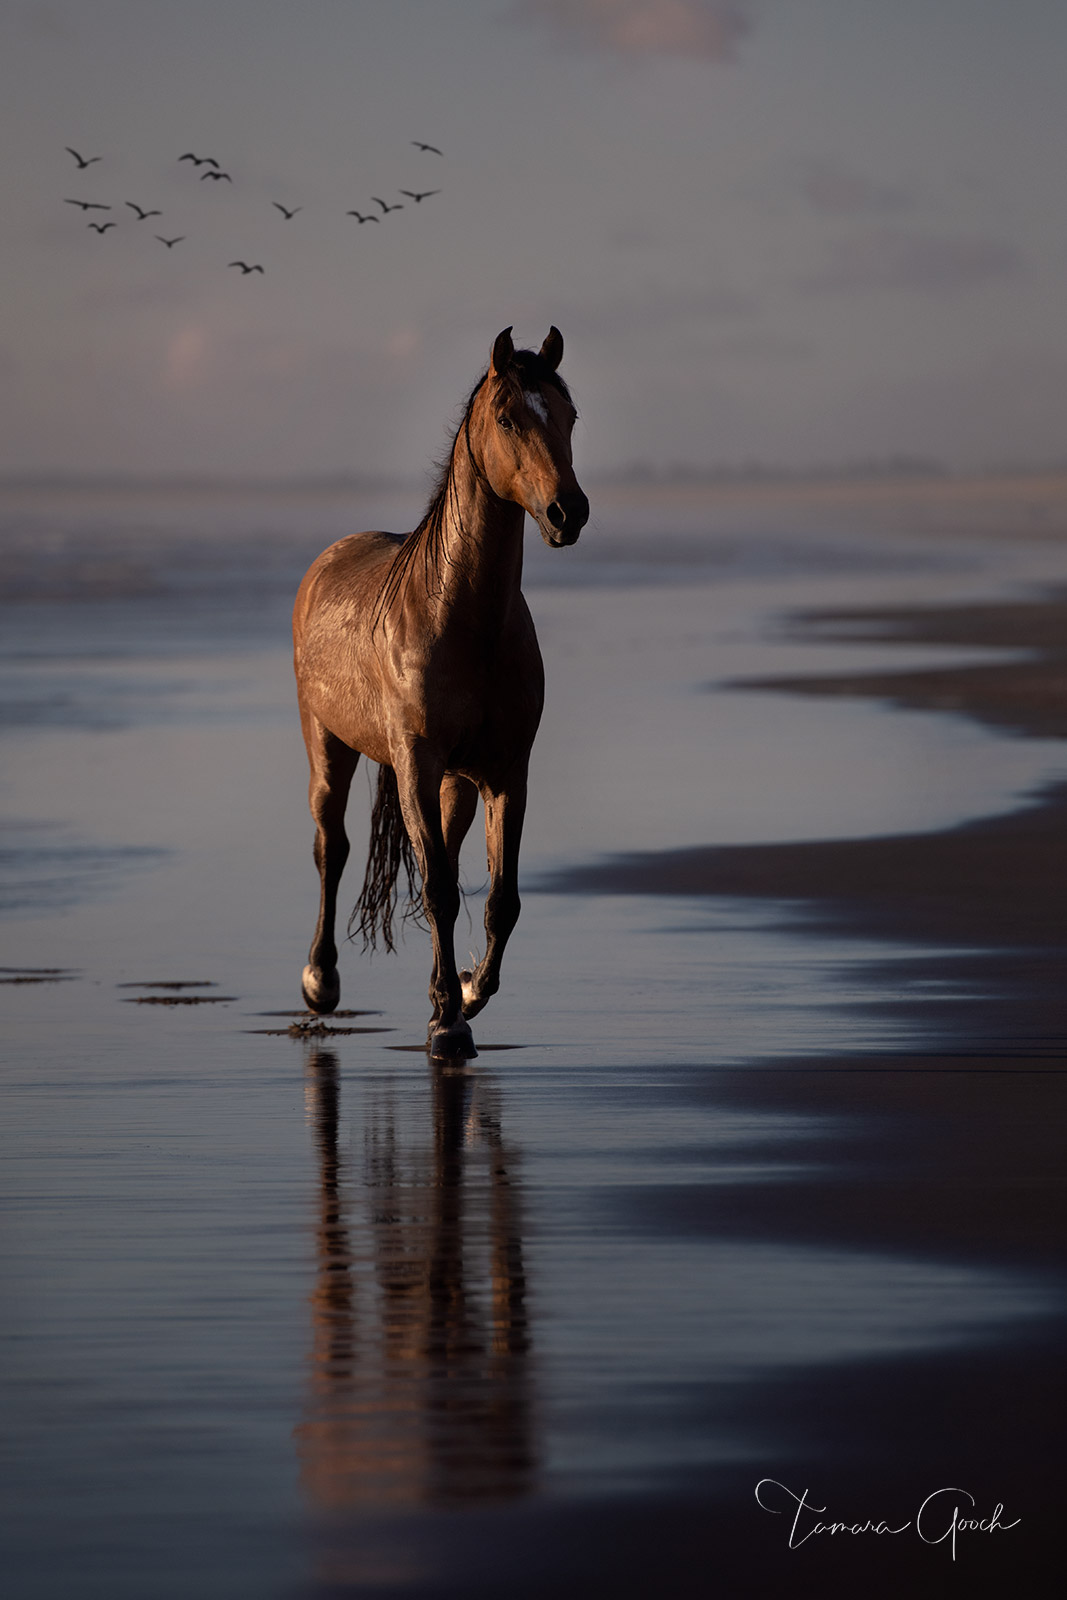 horse, horses, horse photos, photographer, Oregon, coast, coastal, beach, water, birds, gulls, sunset, sand, surf, buckskin, workshop, tours, reflection, equus, cheval, caballos, pferd, equine, equest, photo